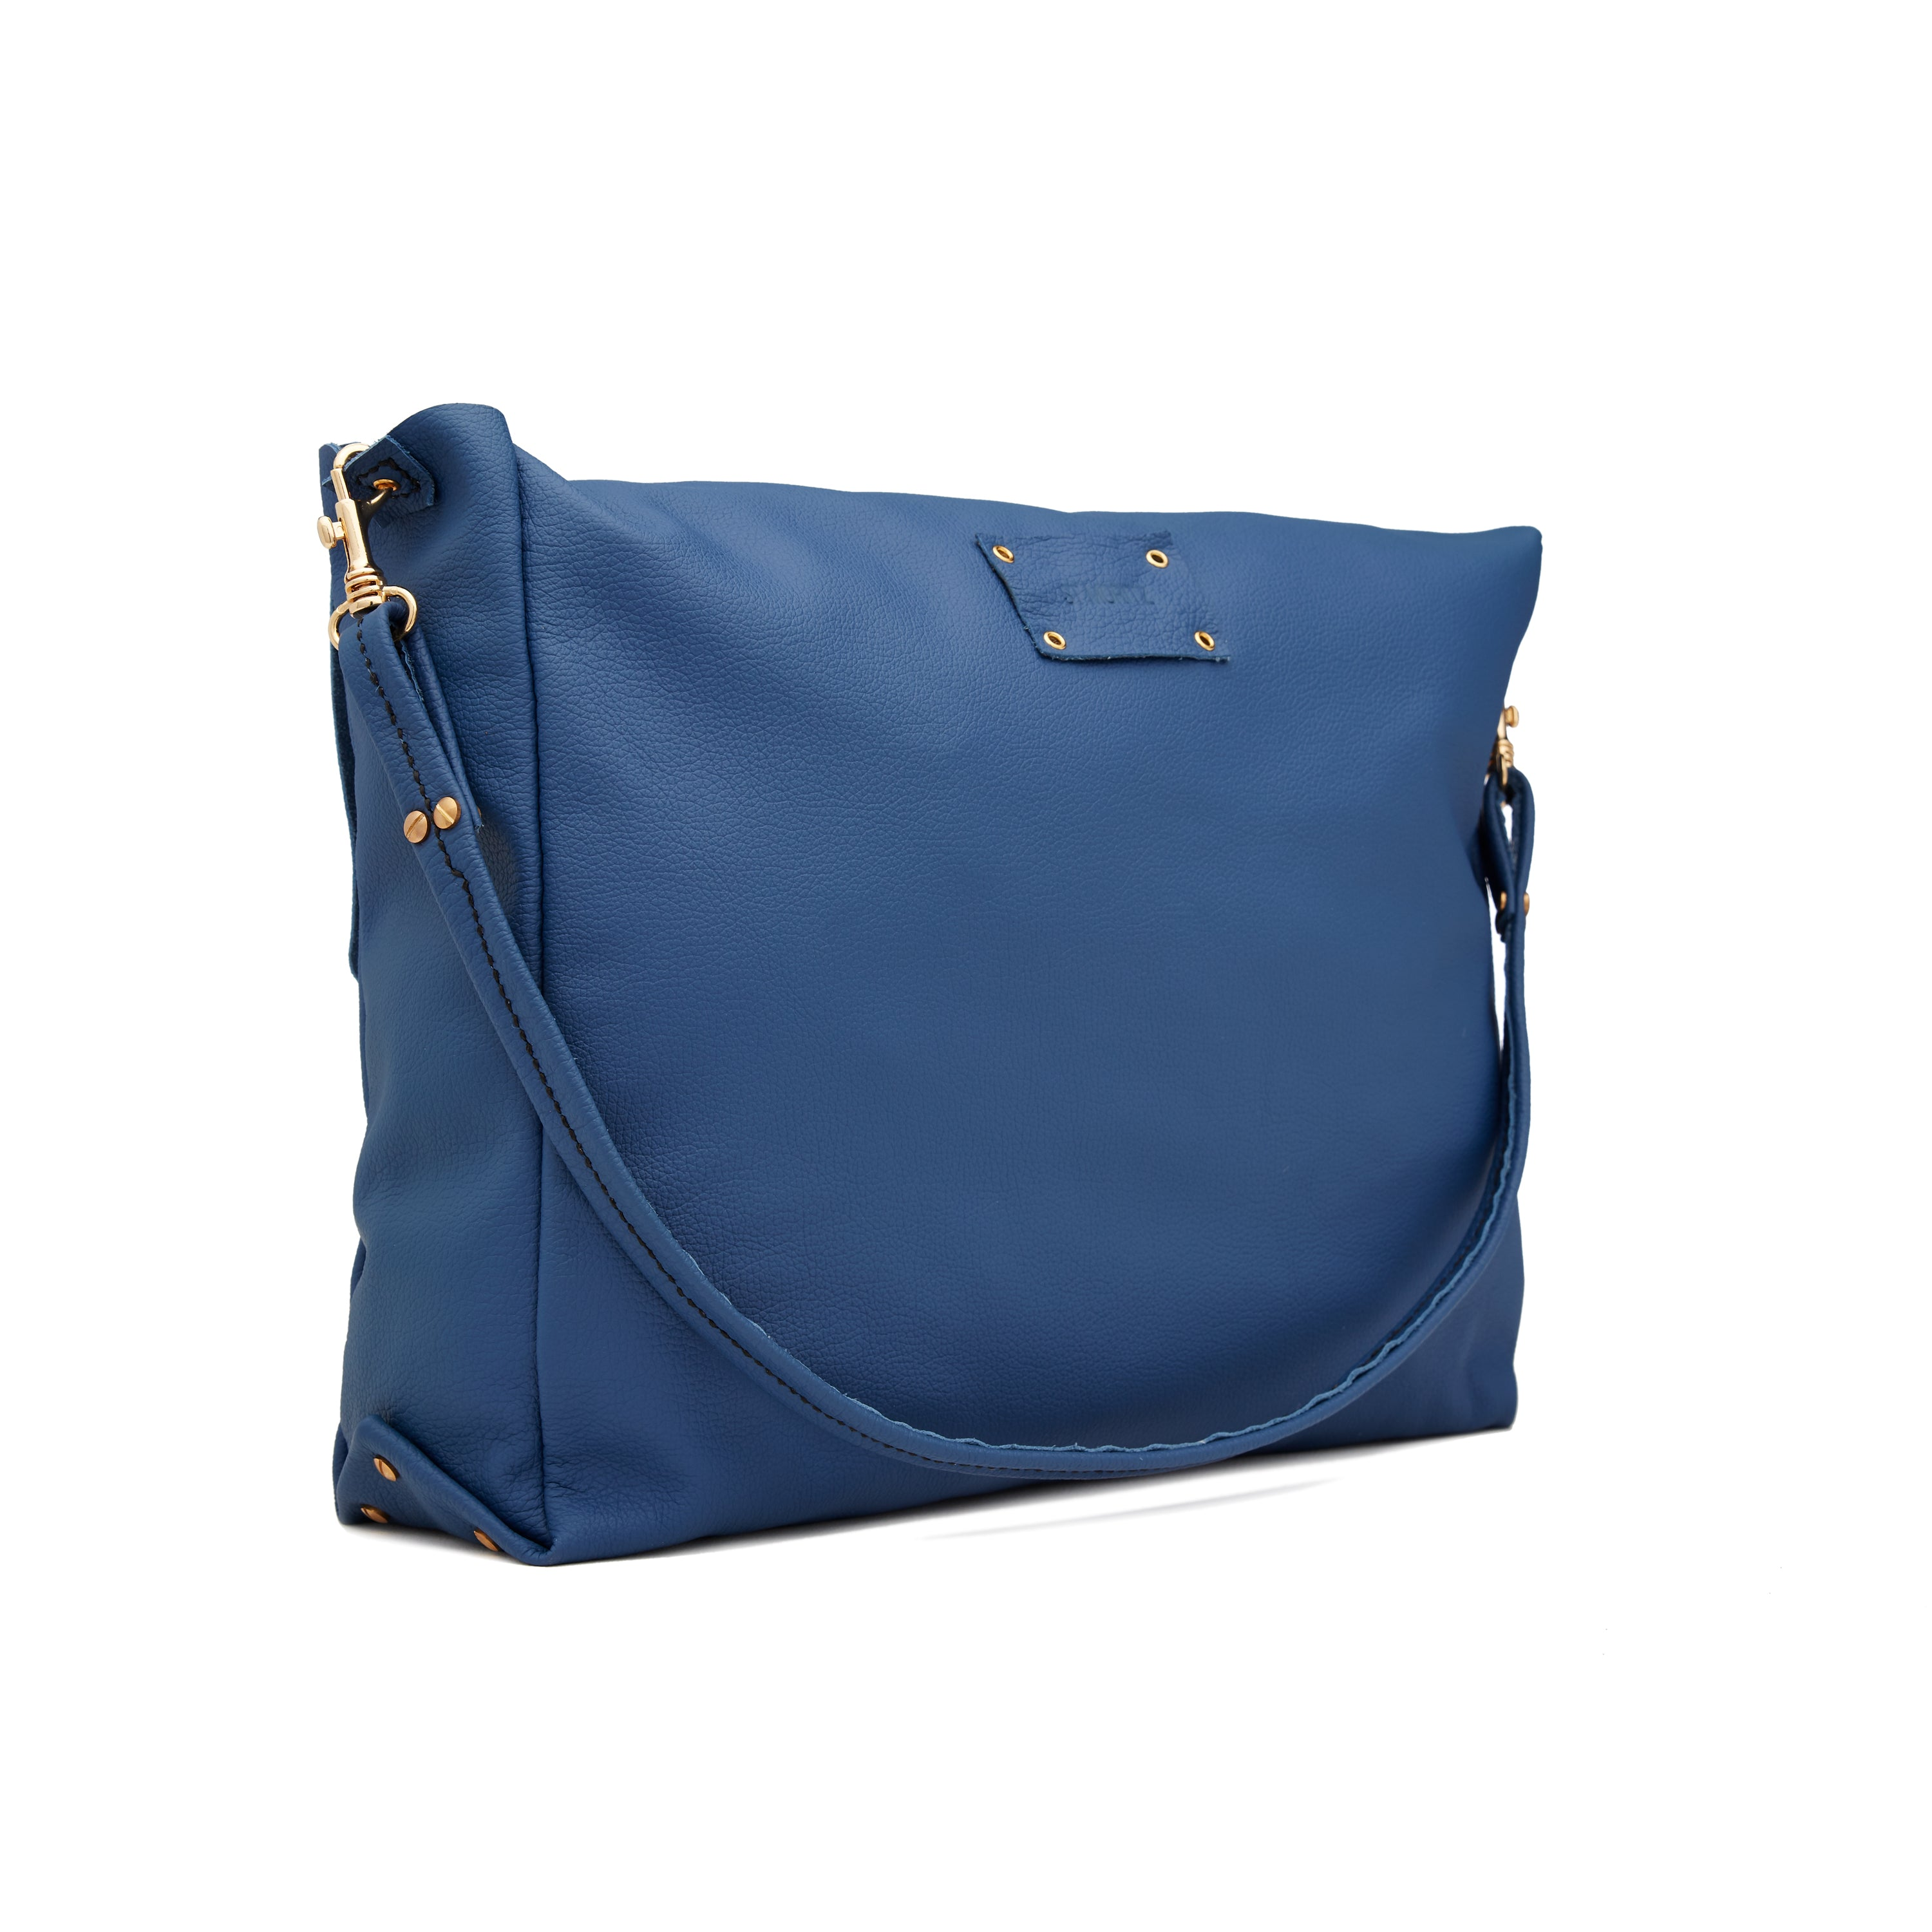 The Tote in Cobalt Blue